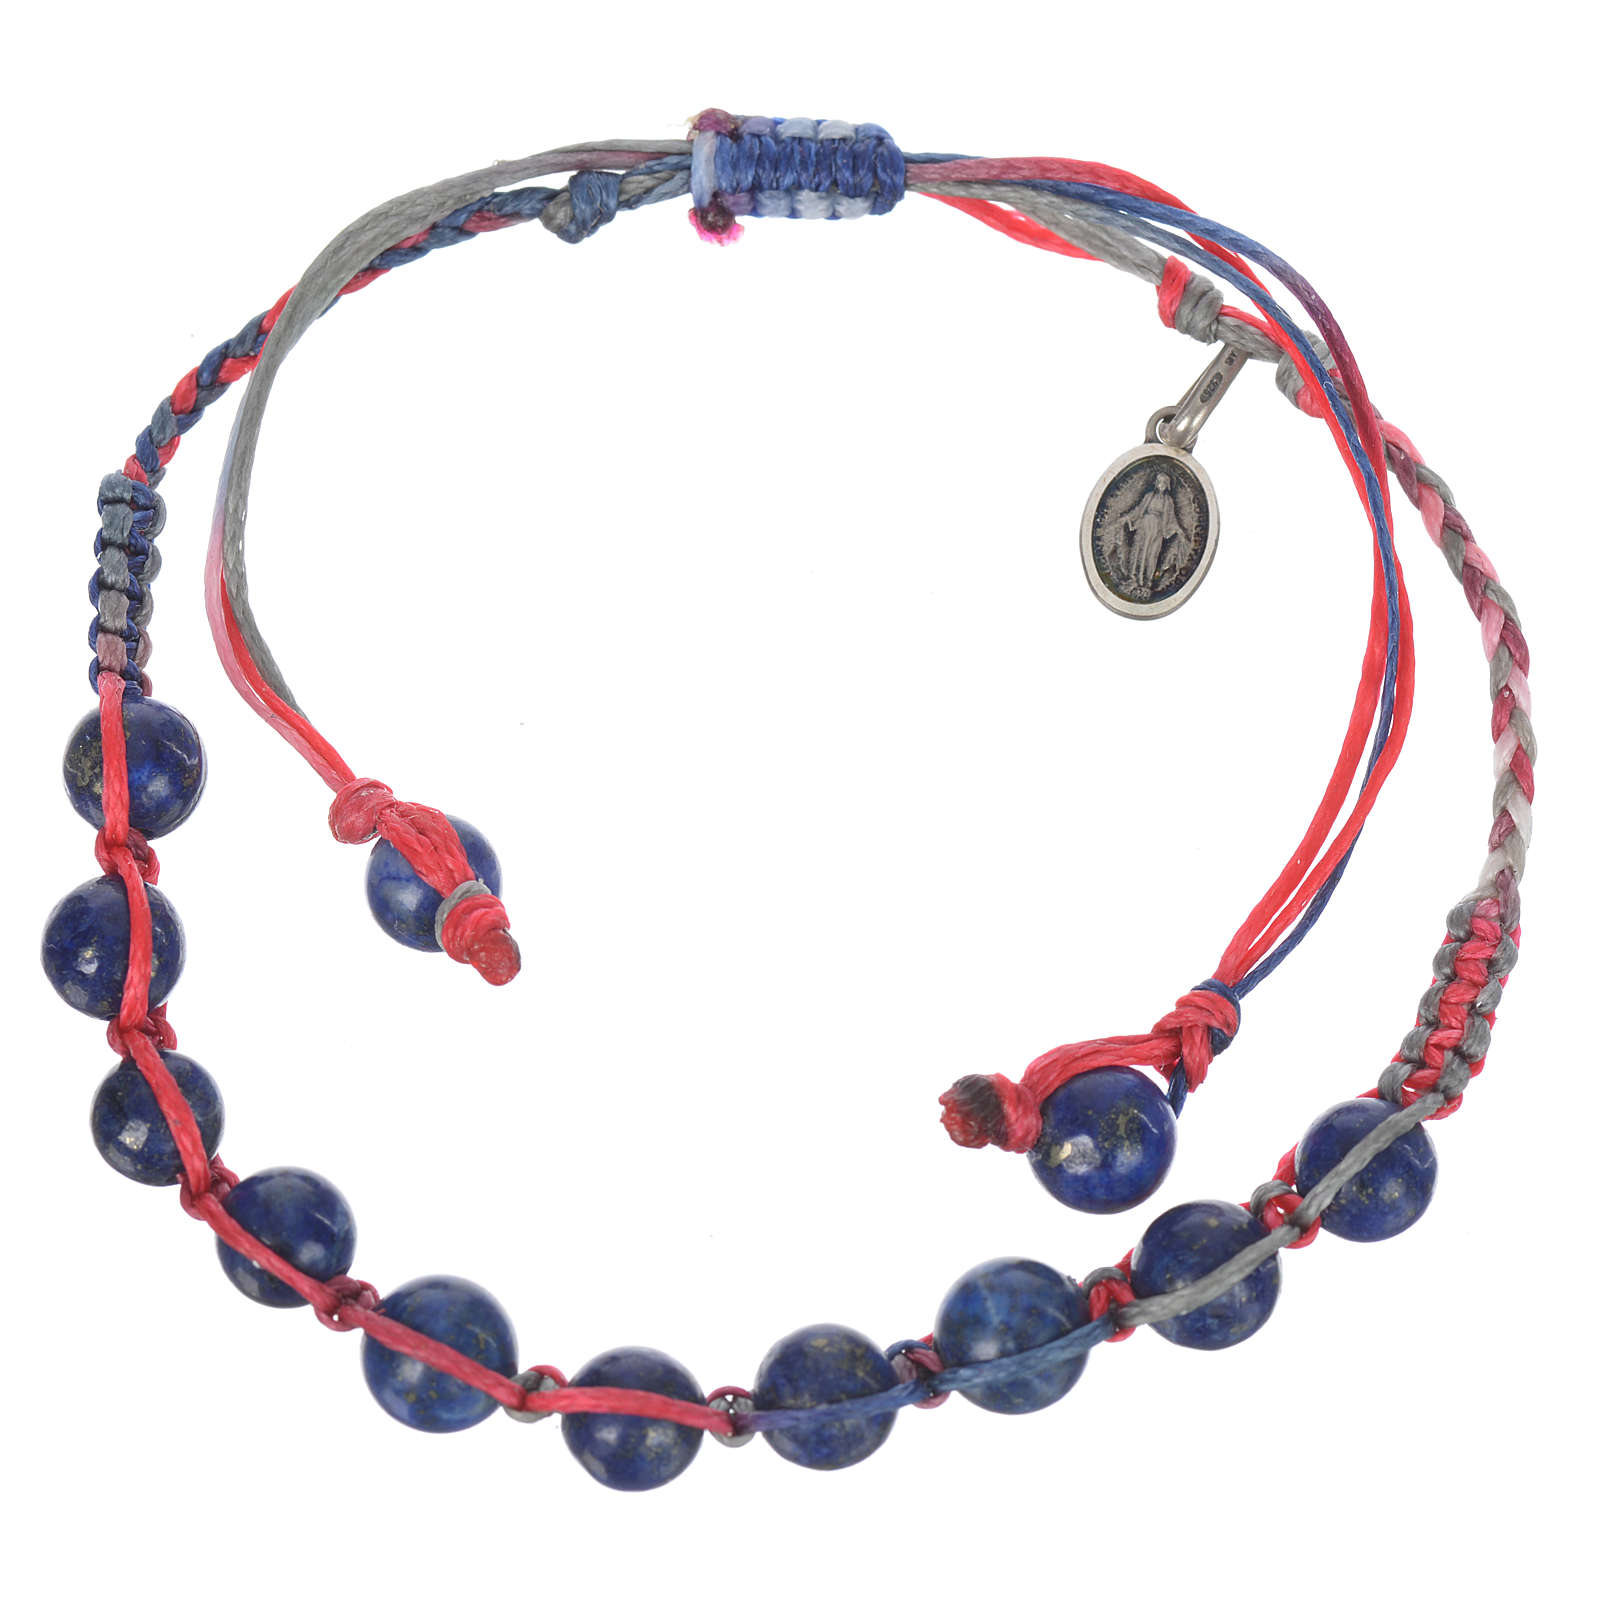 Bracelet in Lapis lazuli with Medal in silver and multicoloured cord 4